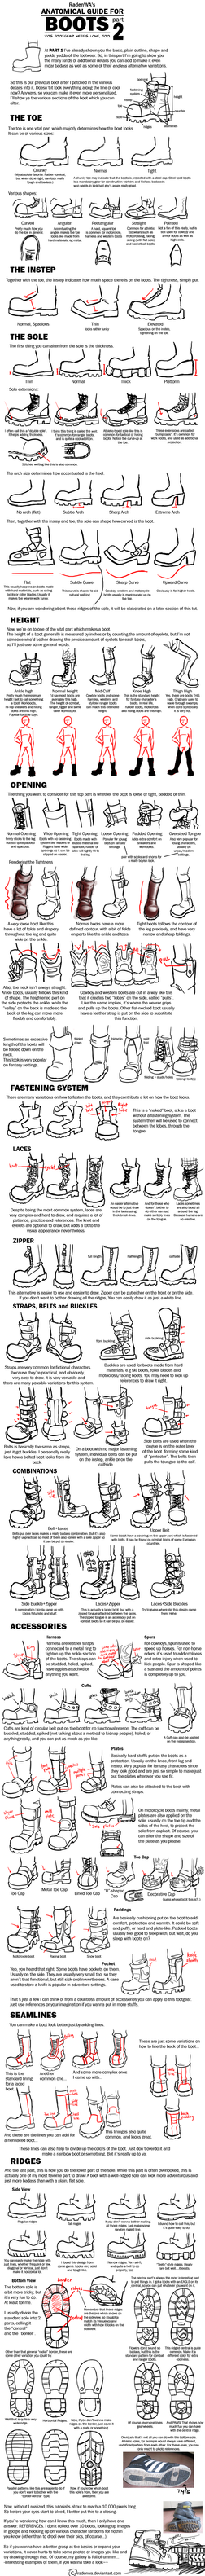 WA's BOOT Anatomy Tutorial Pt2 by RadenWA